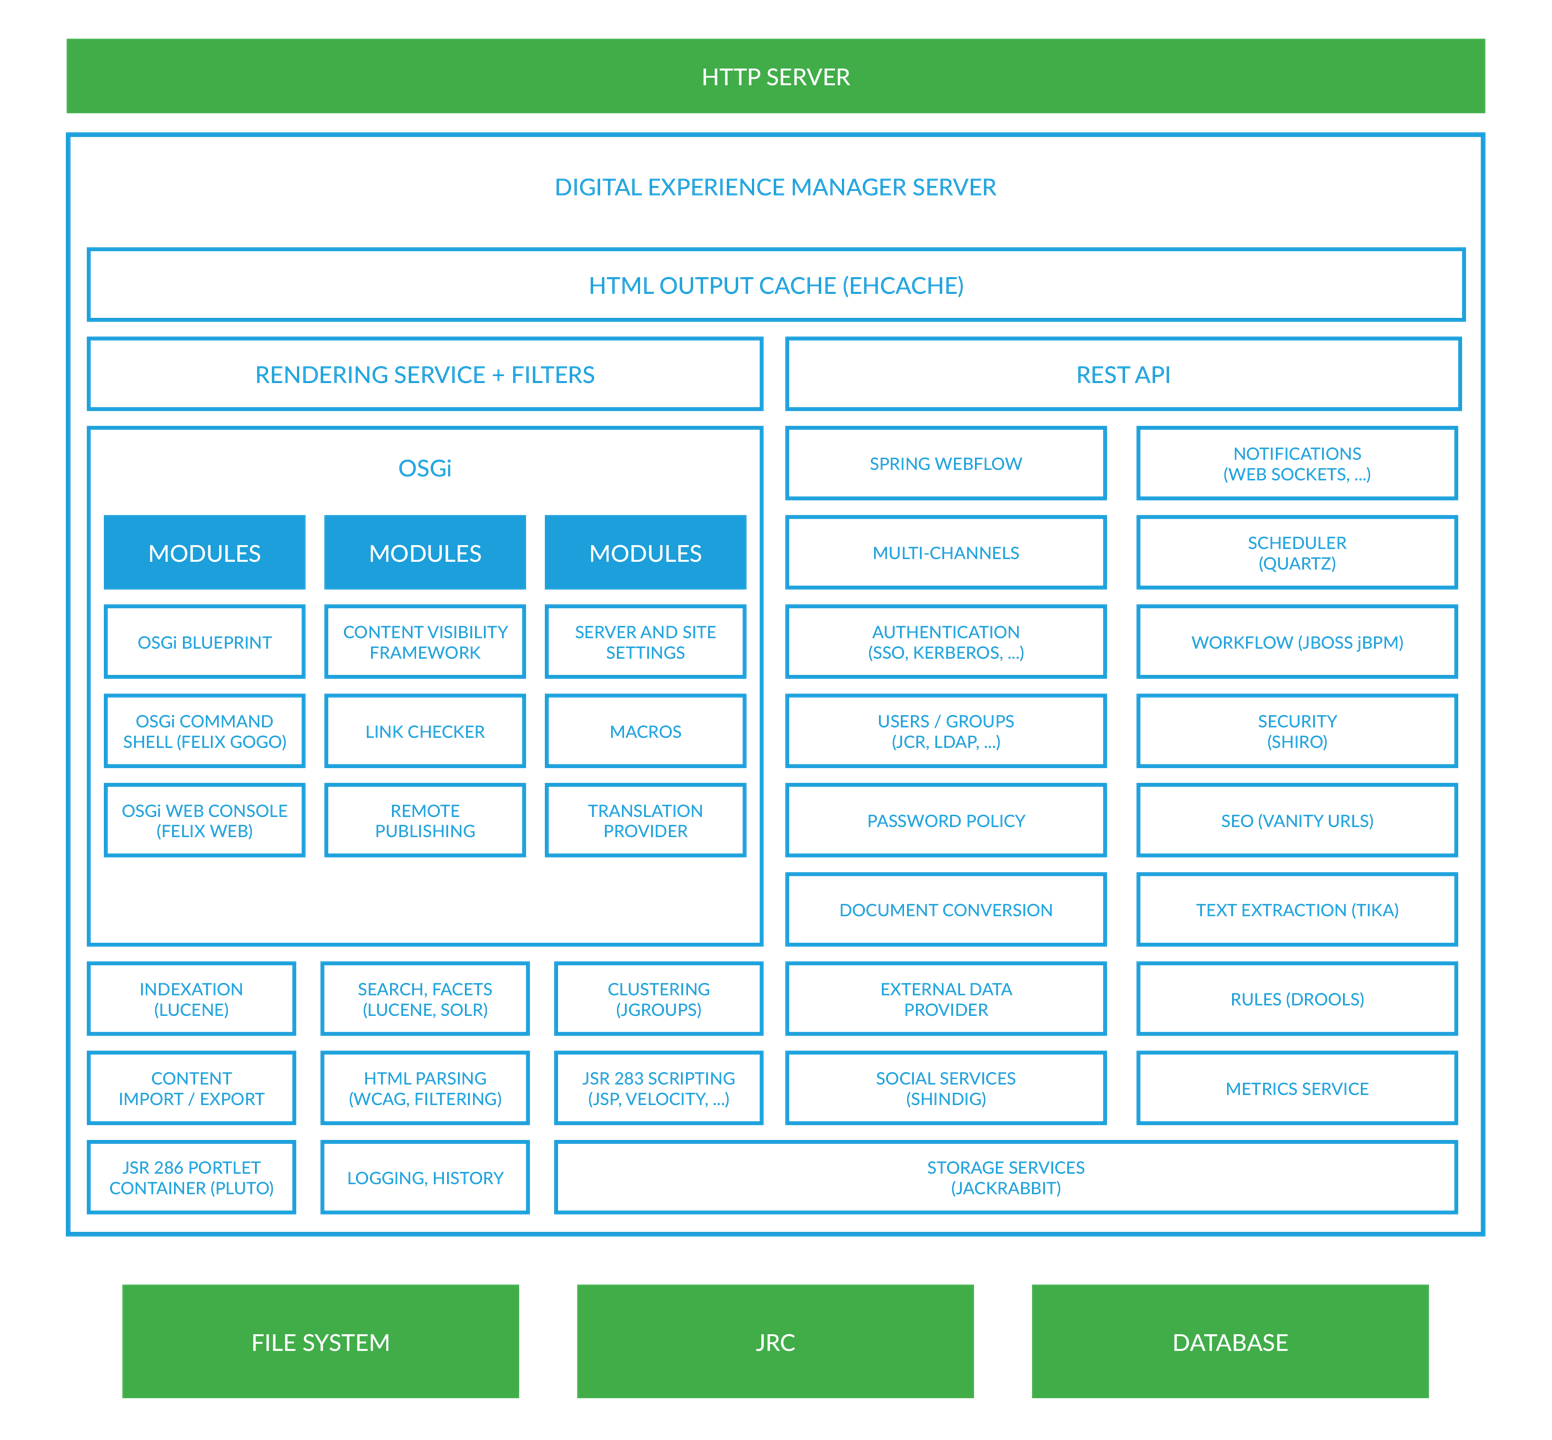 Technical Overview Digital Experience Manager 72 Exploded Engine Diagram Group Picture Image By Tag As You Can See The Top Layers Are Basic Rendering And Communication While Underlying Services More Modular Boxes With Blue Outlines